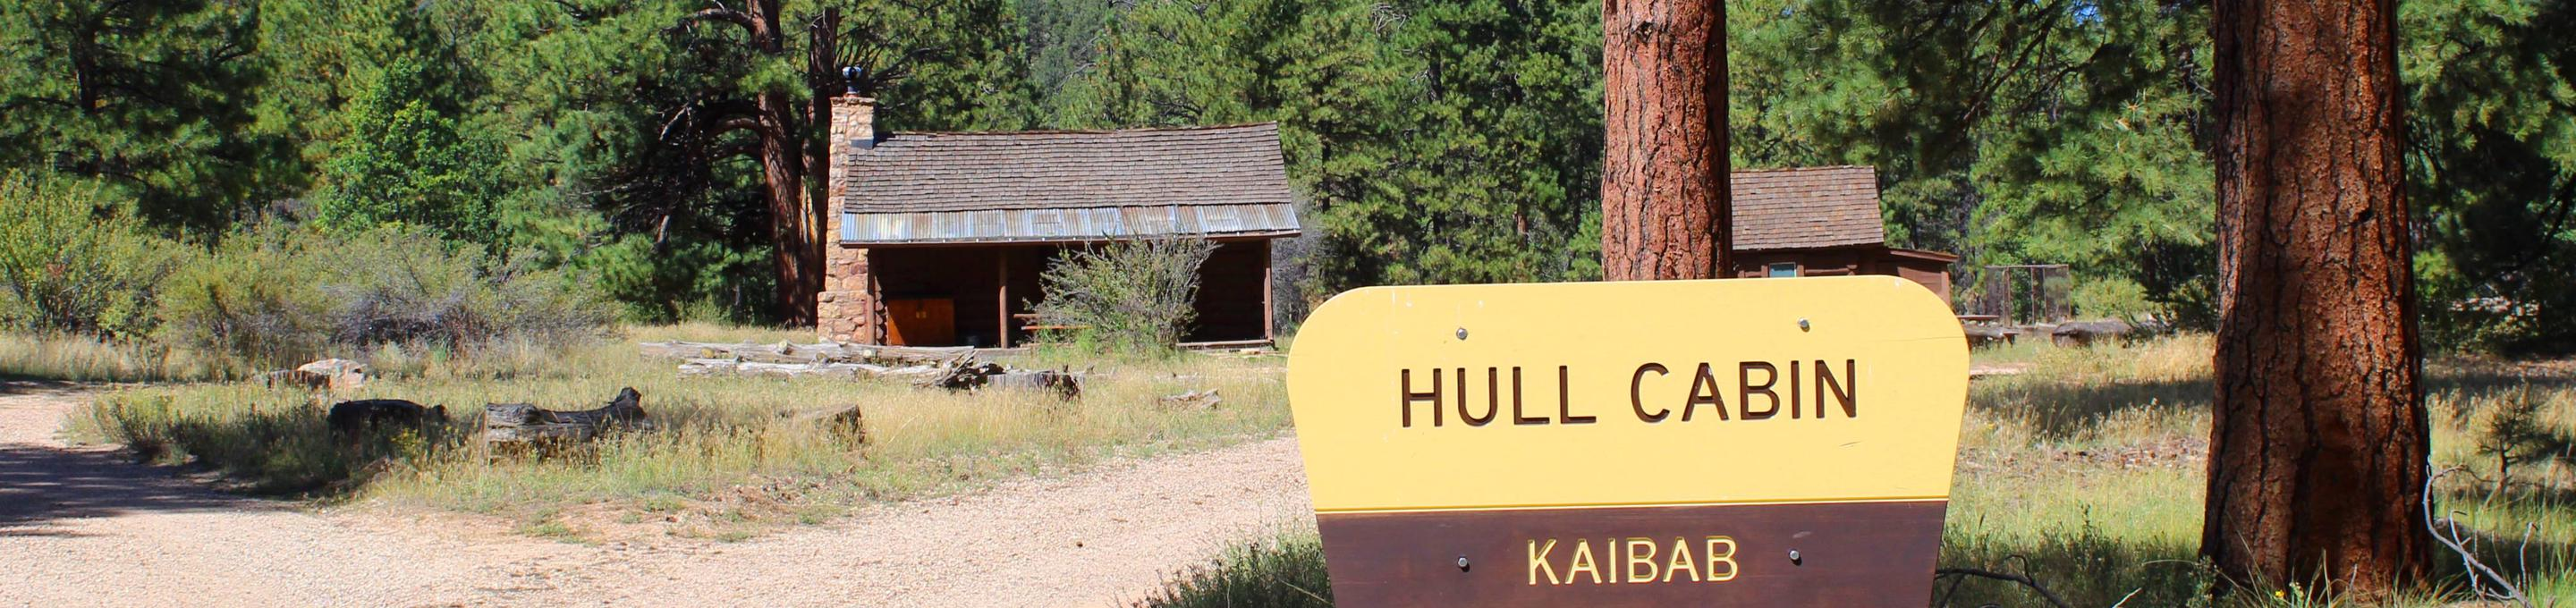 Welcome to Hull CabinEntrance sign and main cabin